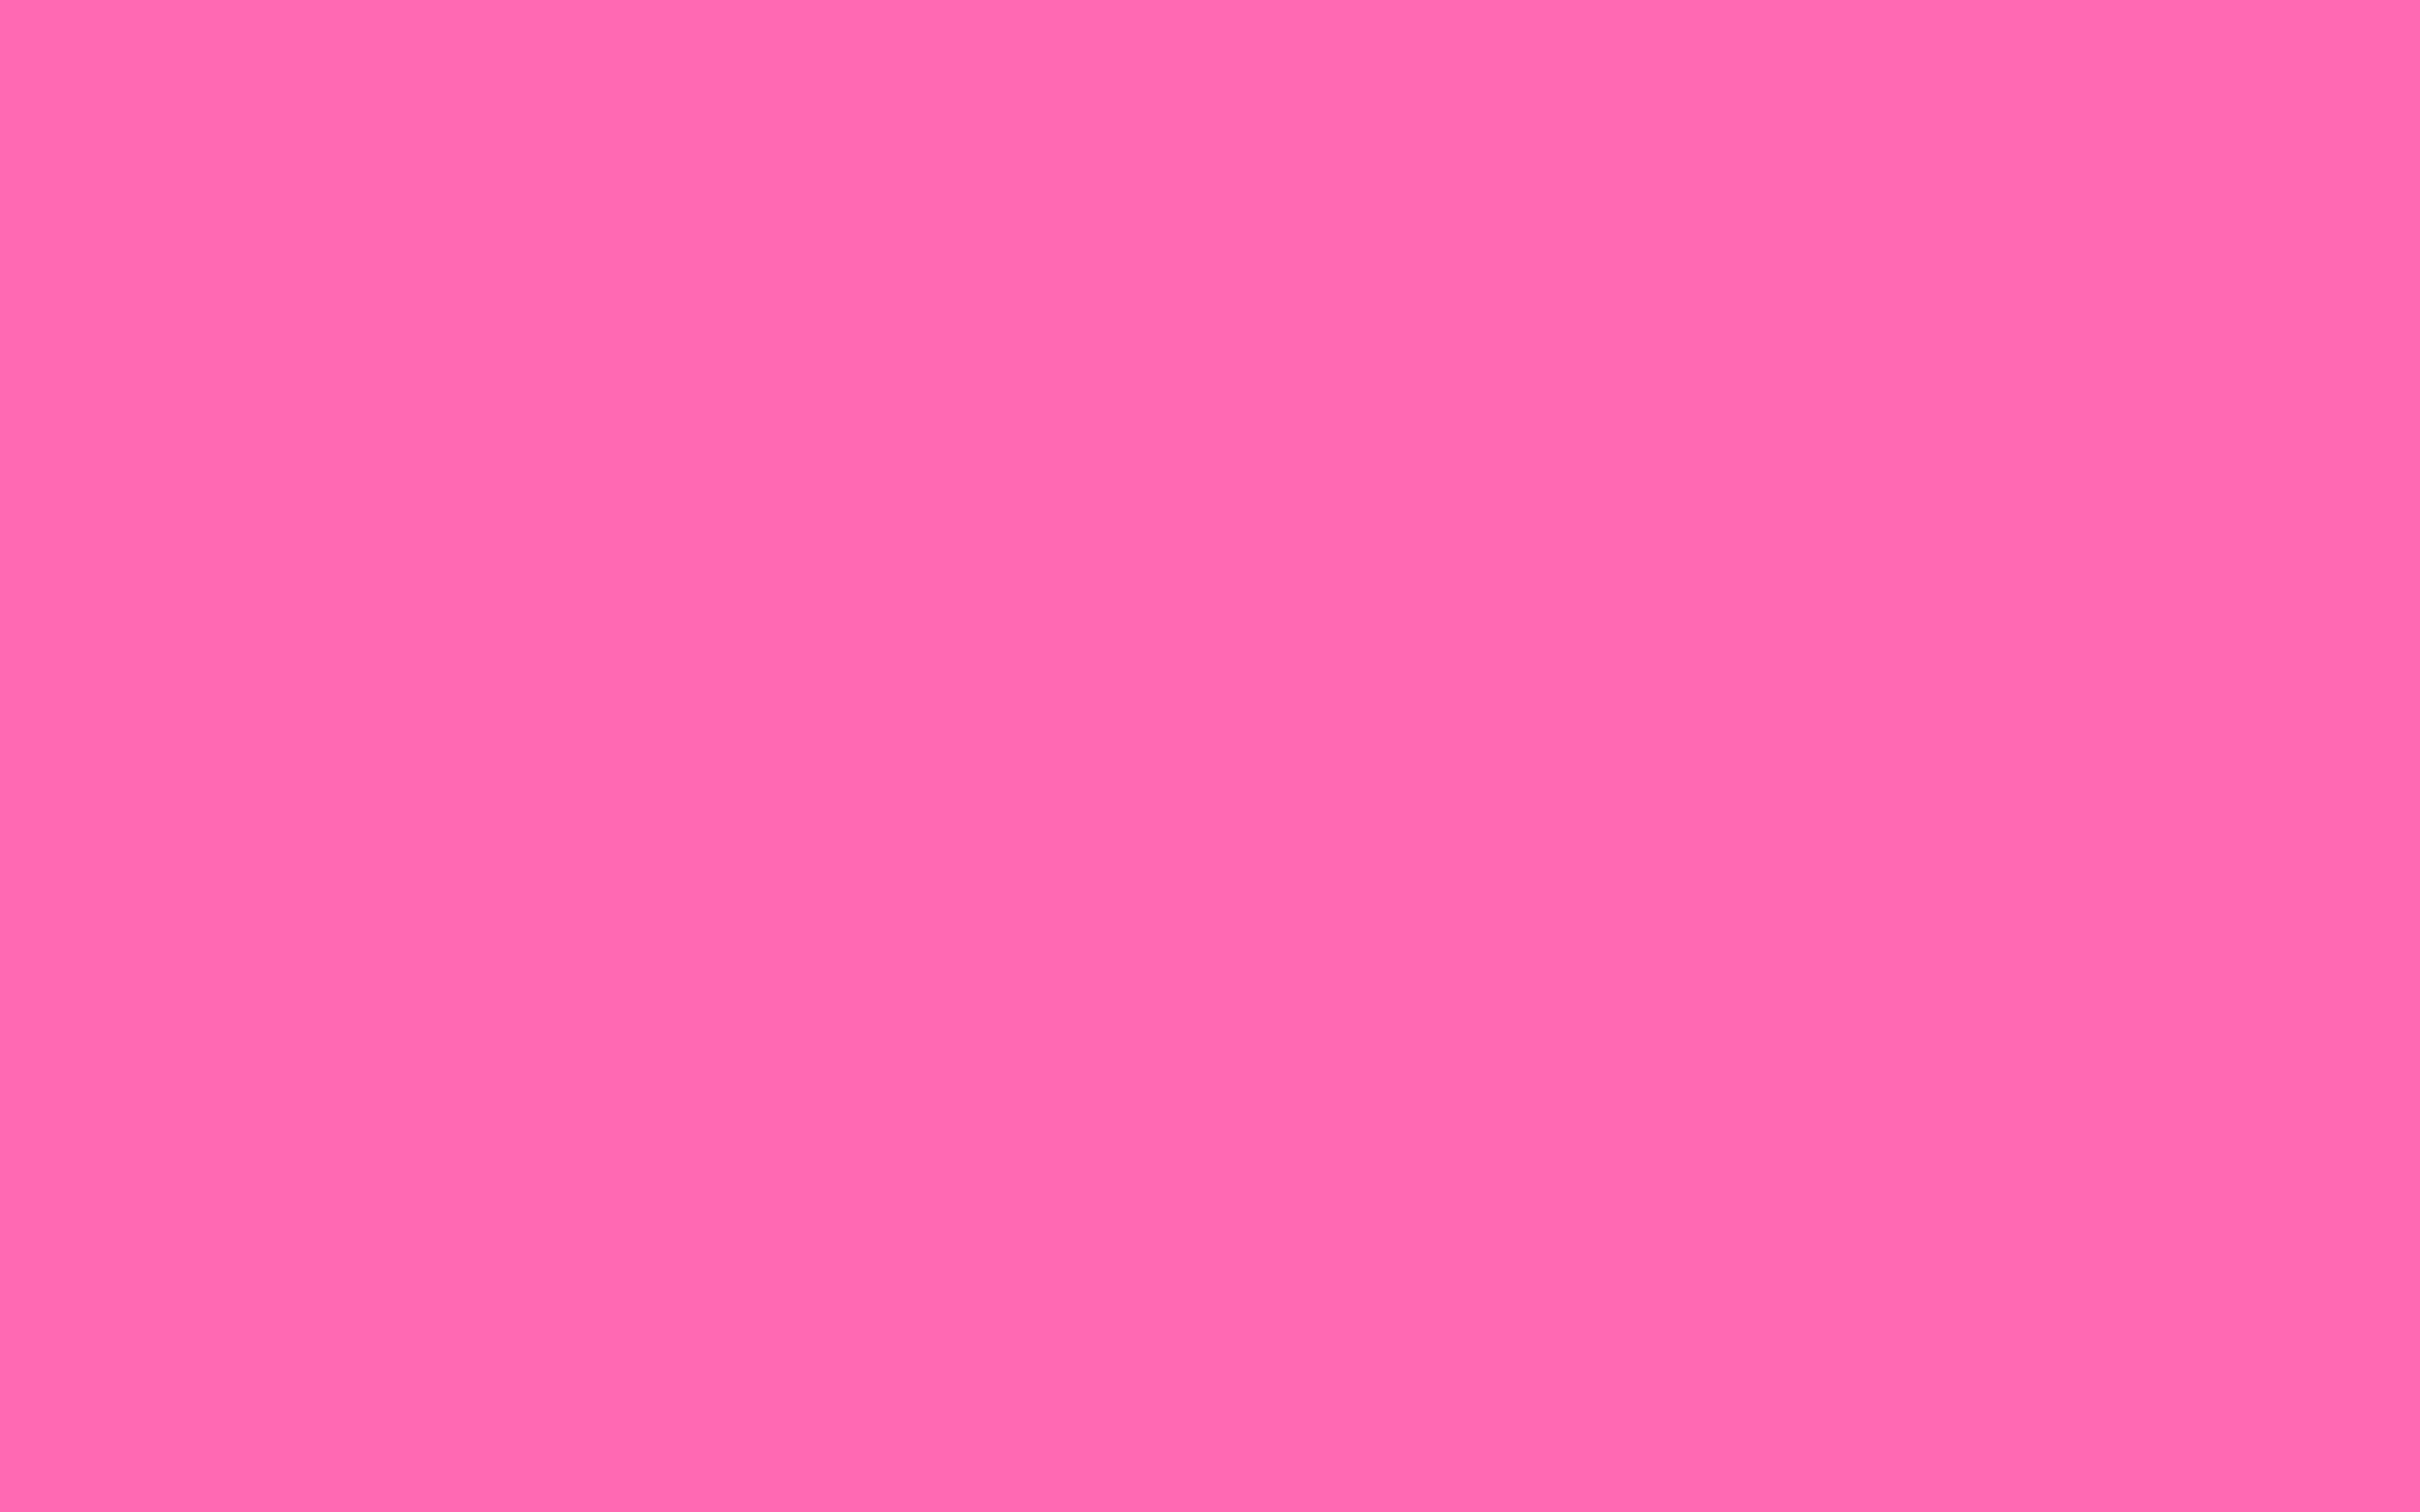 2560x1600 Hot Pink Solid Color Background